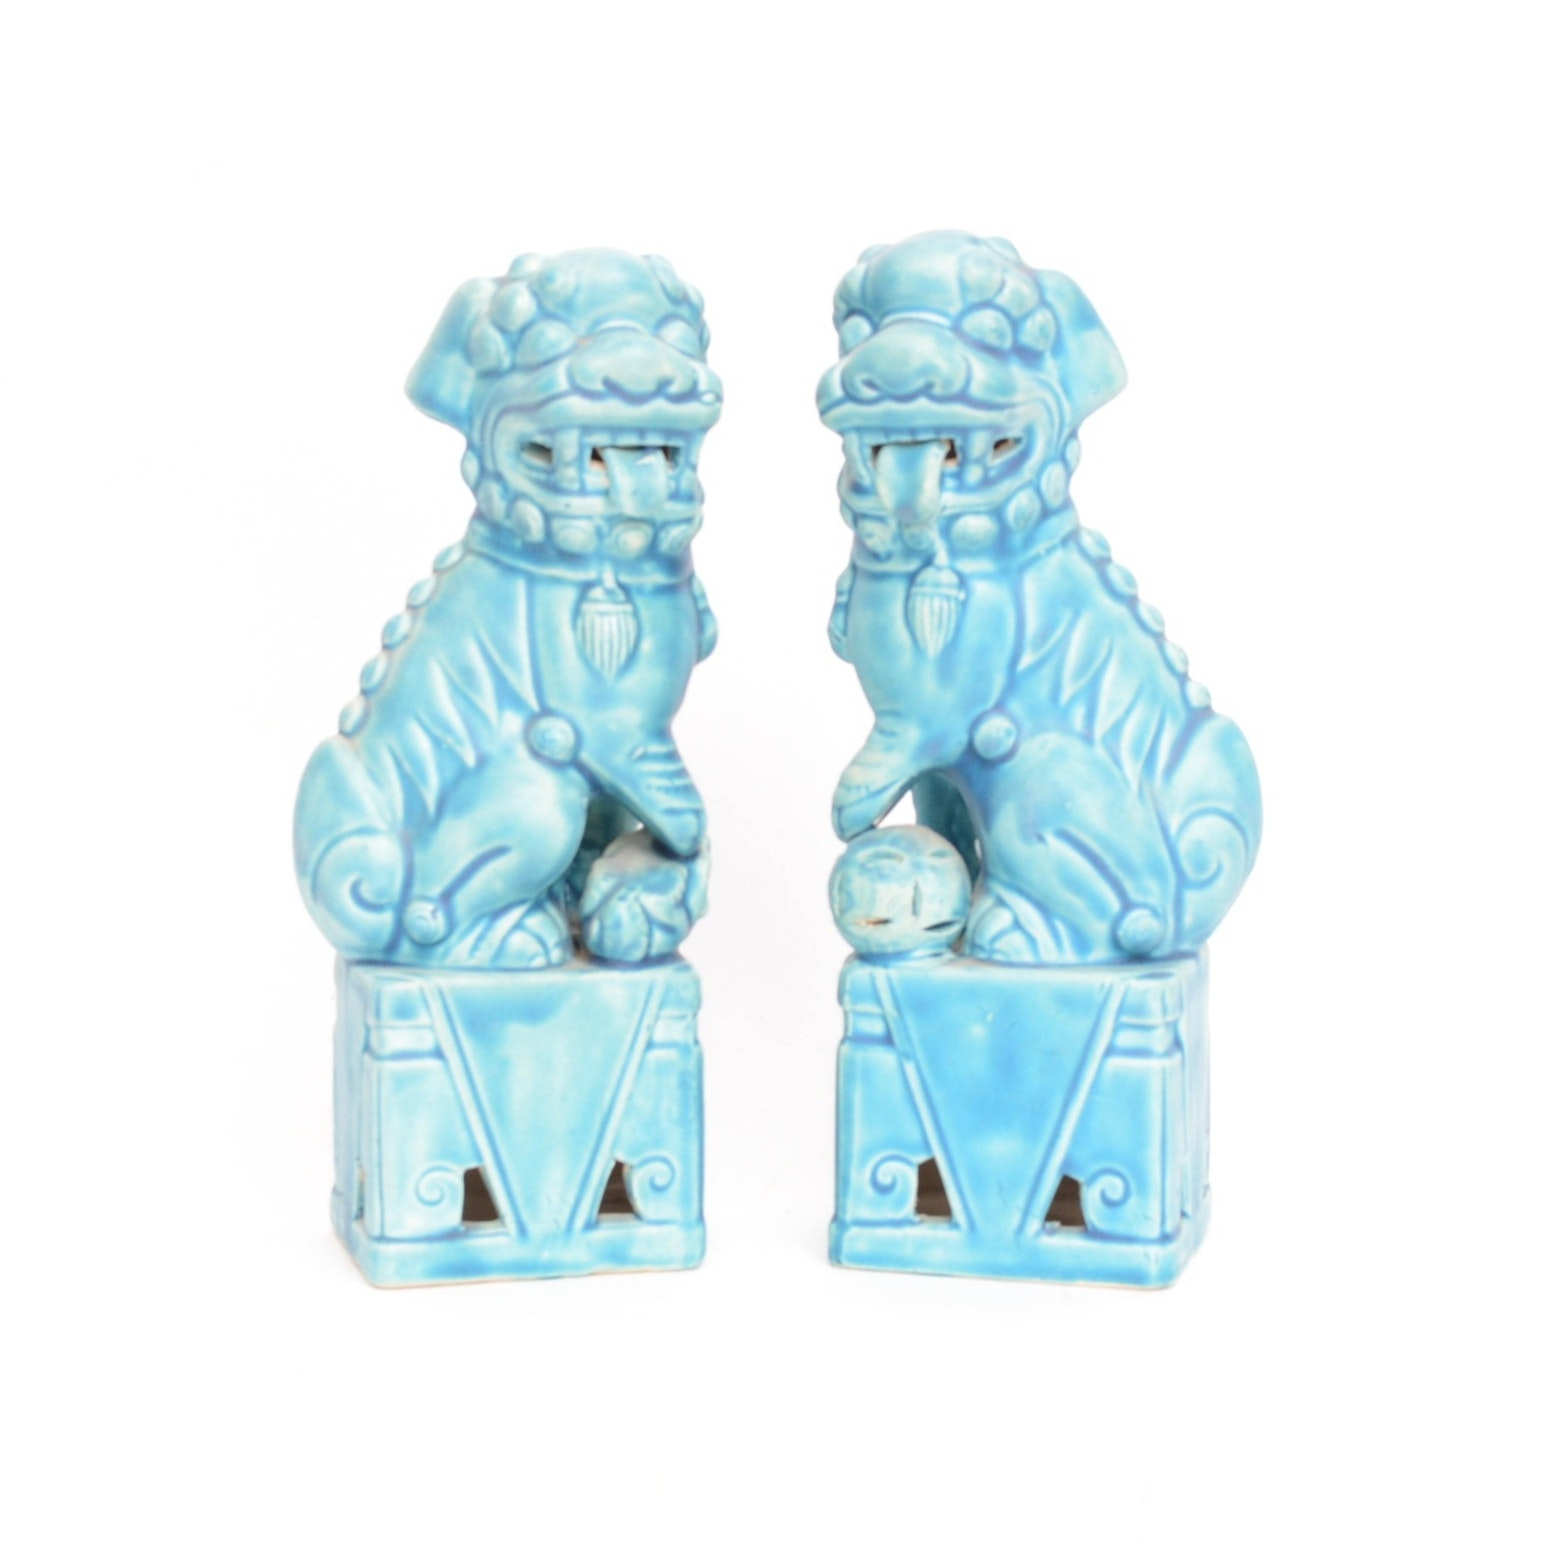 Chinese Style Ceramic Guardian Lions